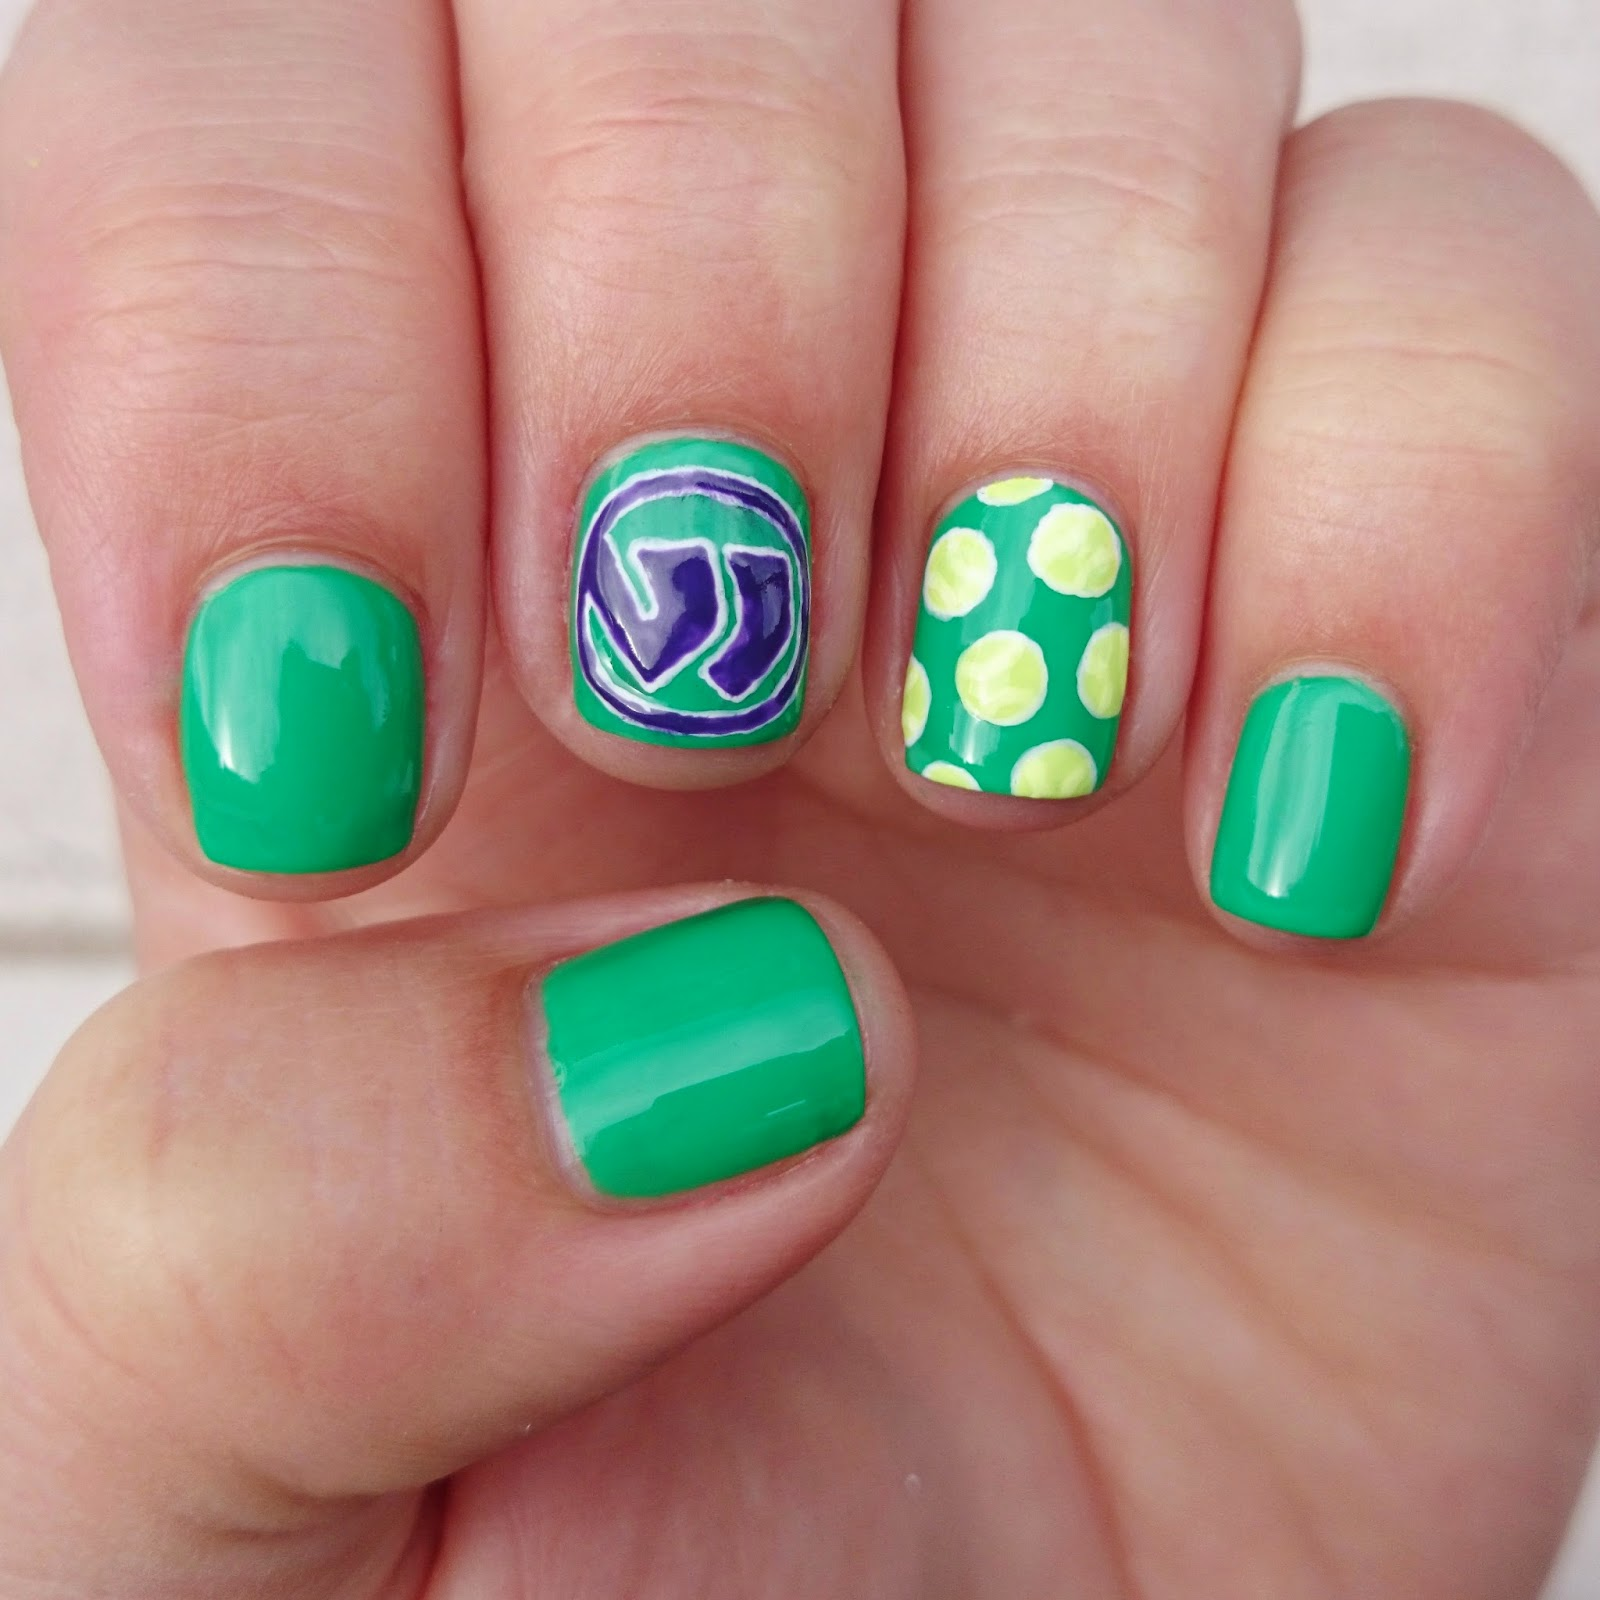 Dahlia nails wimbledon 2014 barry m spring green is the perfect shade to reflect the green lawns of the all england tennis club i added a retro wimbledon logo using our tried and prinsesfo Choice Image